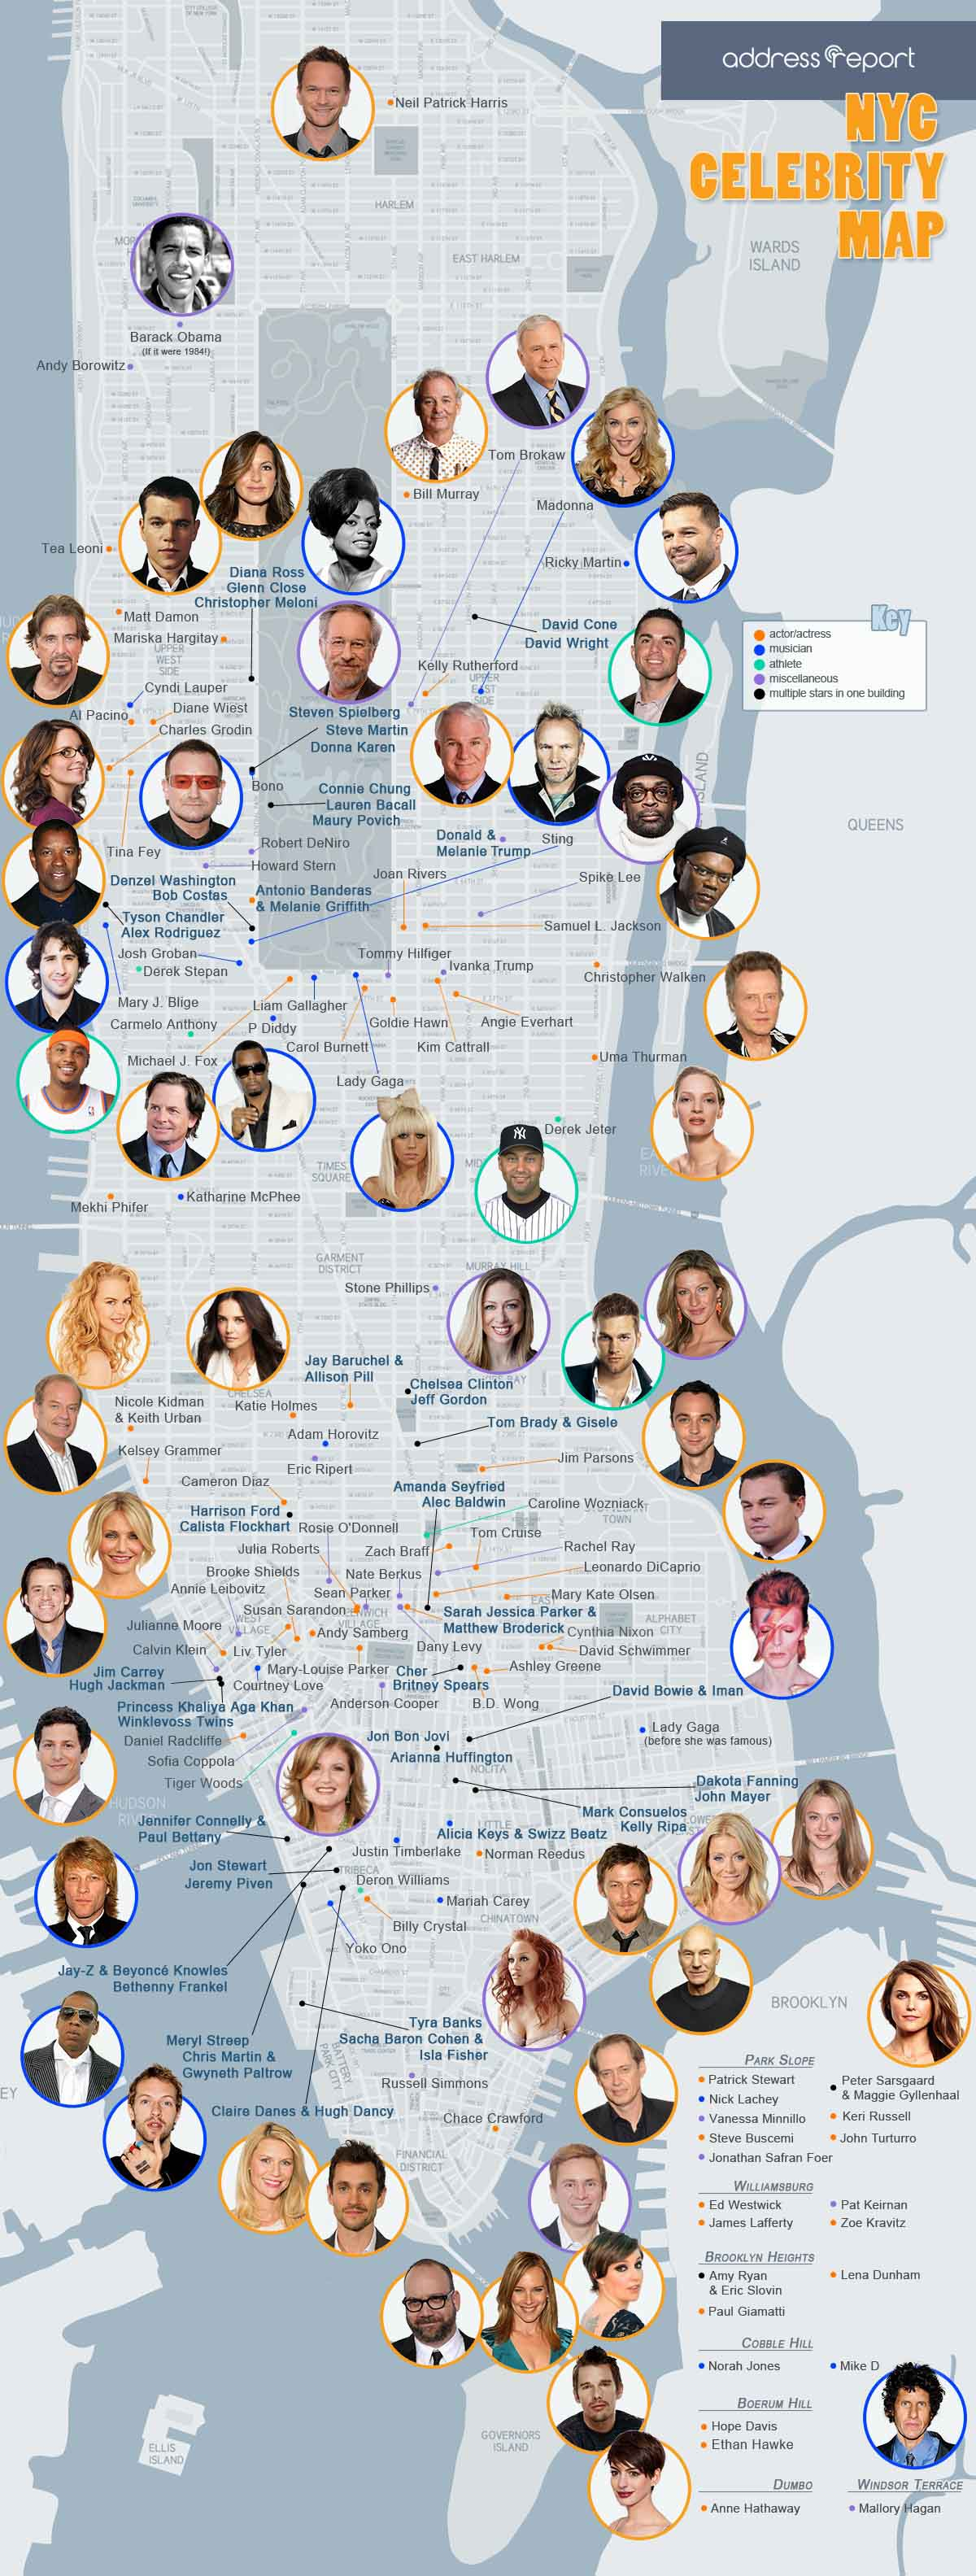 NYC Celebrity Star Map 2014 by Address Report